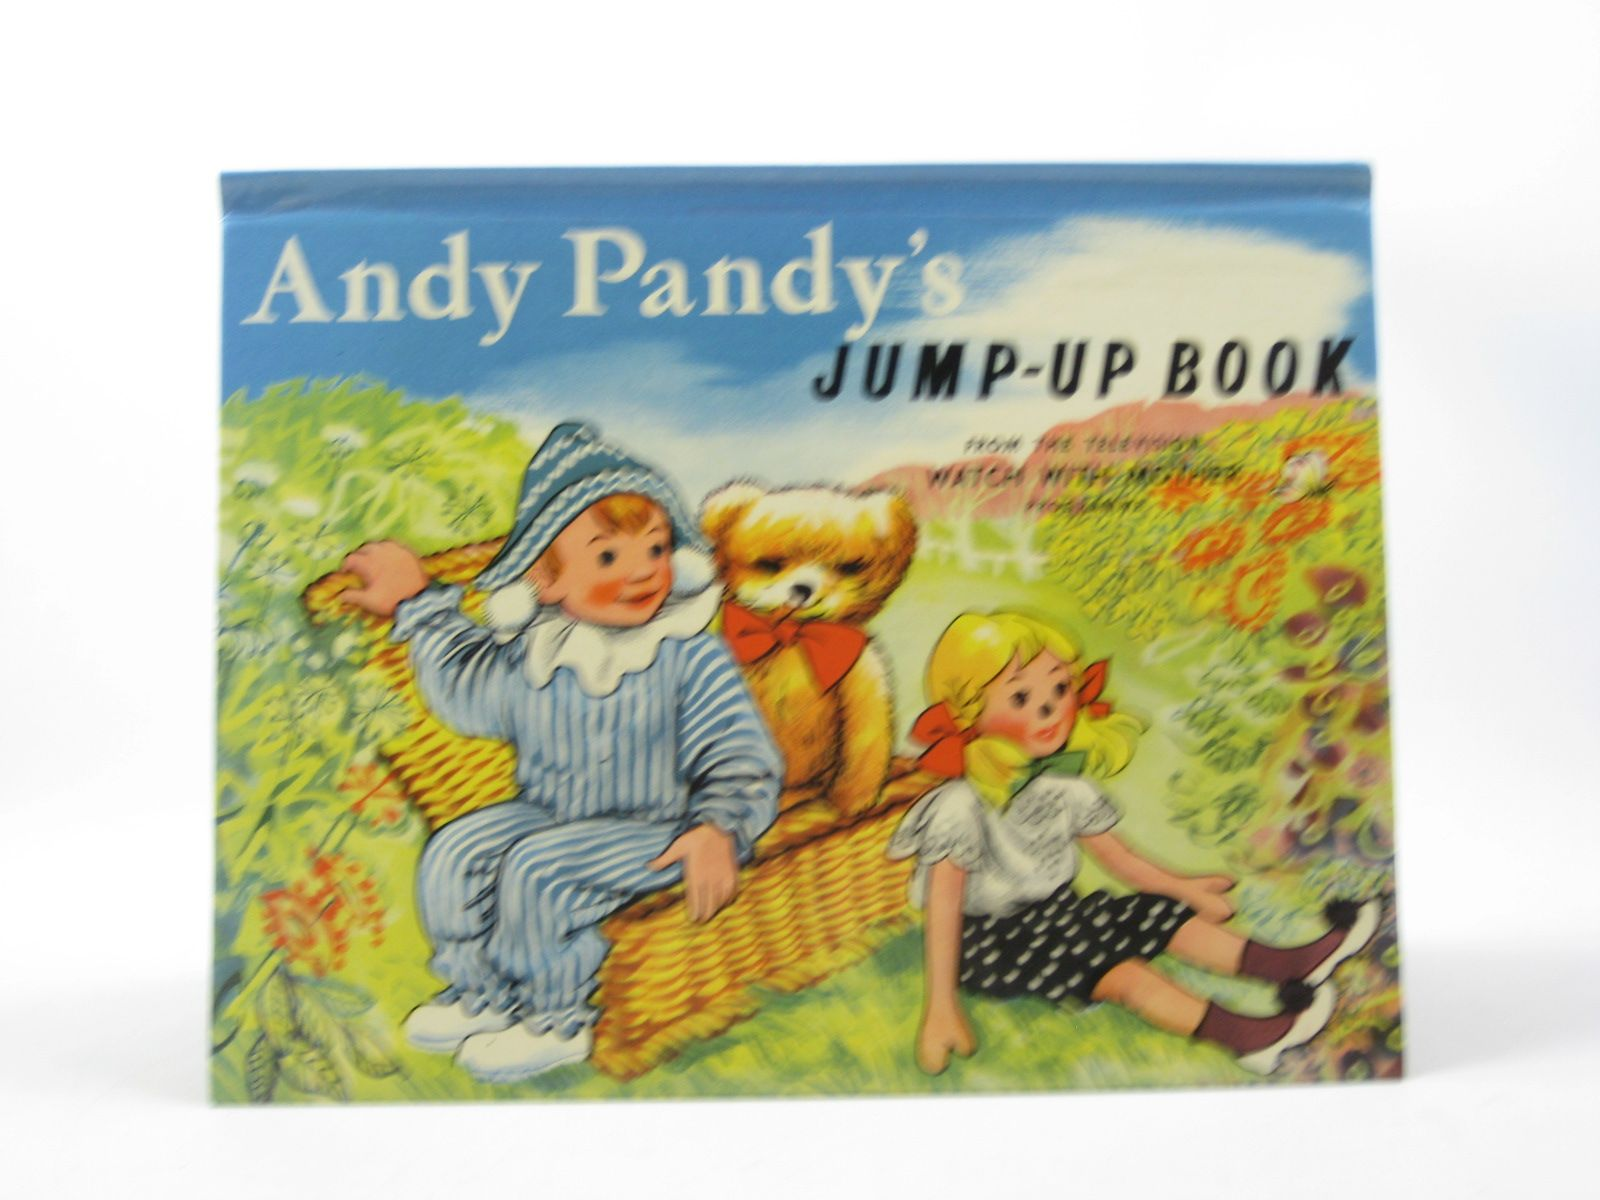 Photo of ANDY PANDY'S JUMP-UP BOOK written by Bird, Maria illustrated by Wright, Matvyn published by Purnell (STOCK CODE: 1312758)  for sale by Stella & Rose's Books